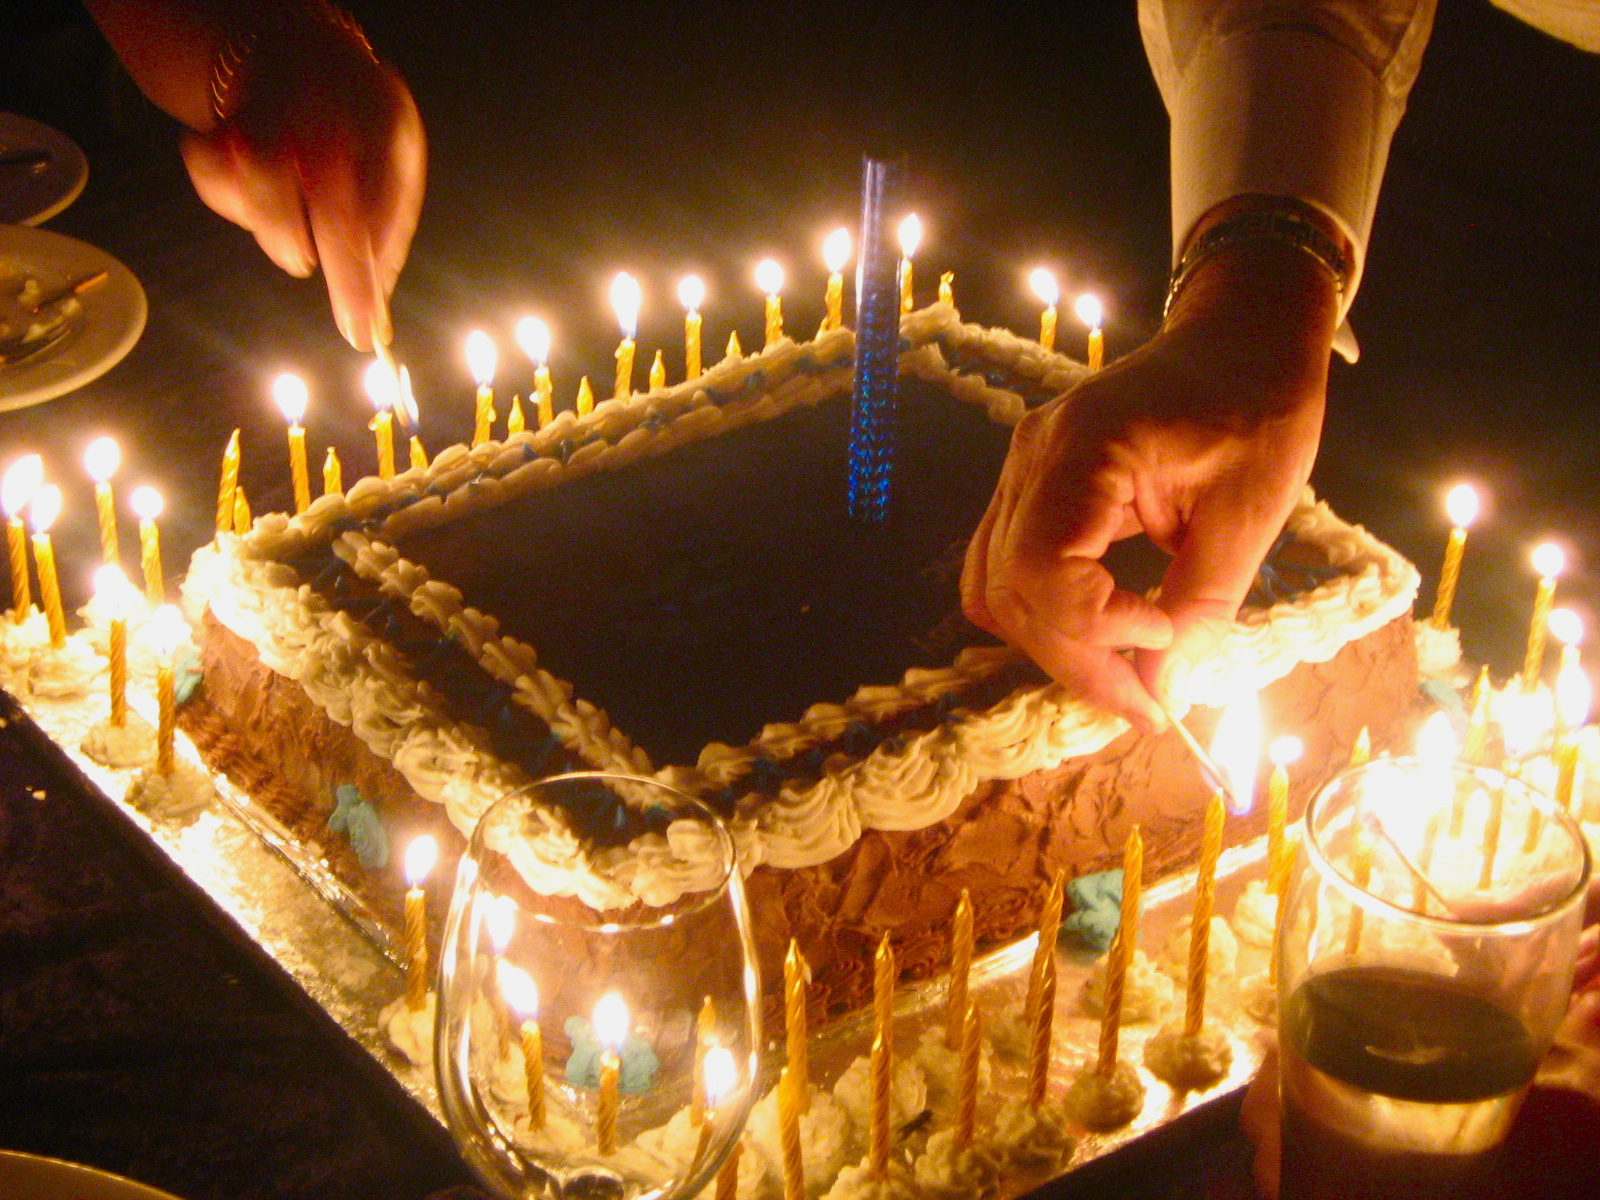 lighting candles on a cake for a 60th birthday celebration & birthday party